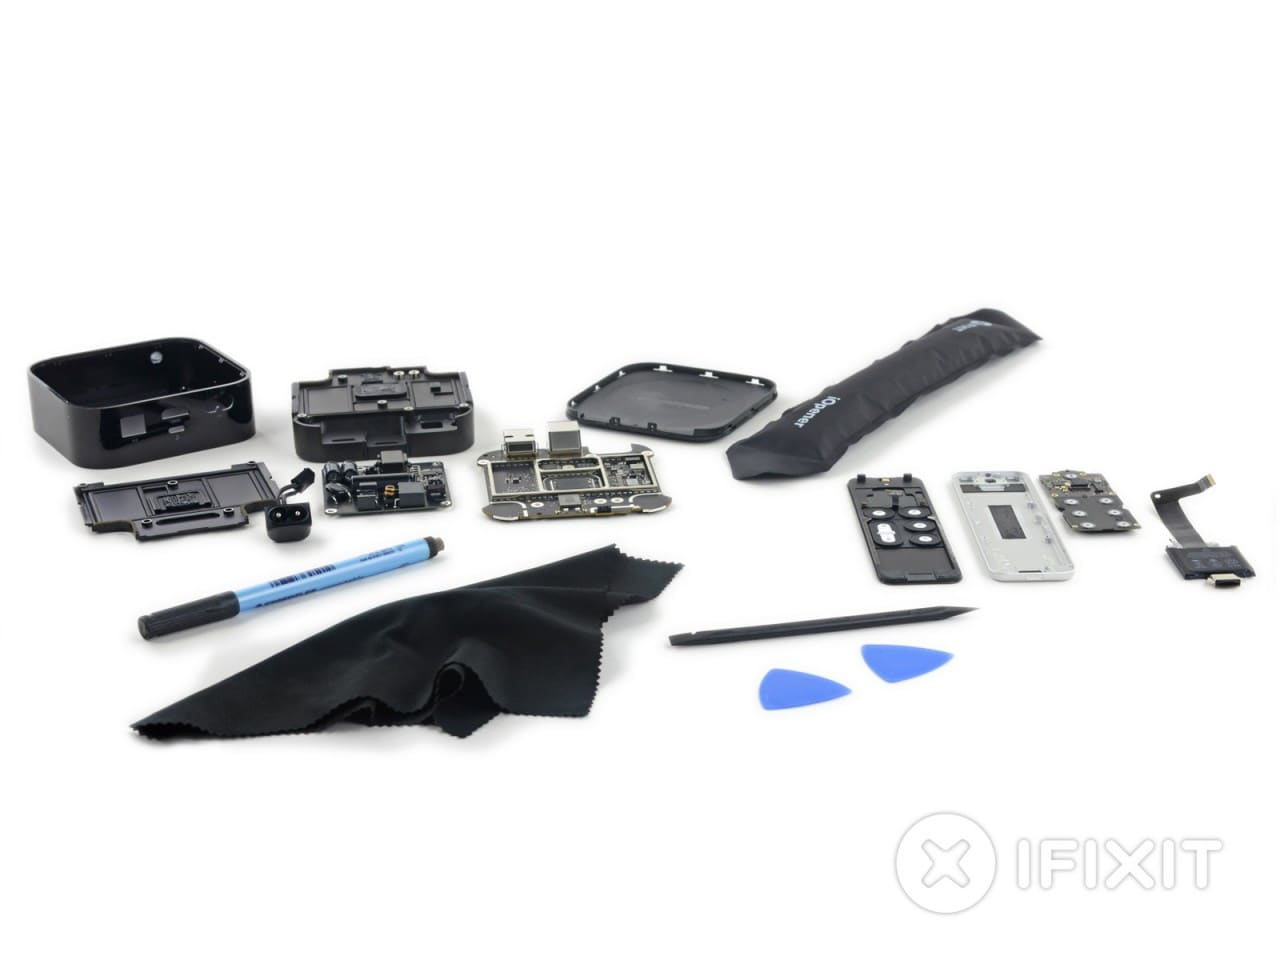 iFixit teardown nuova Apple TV